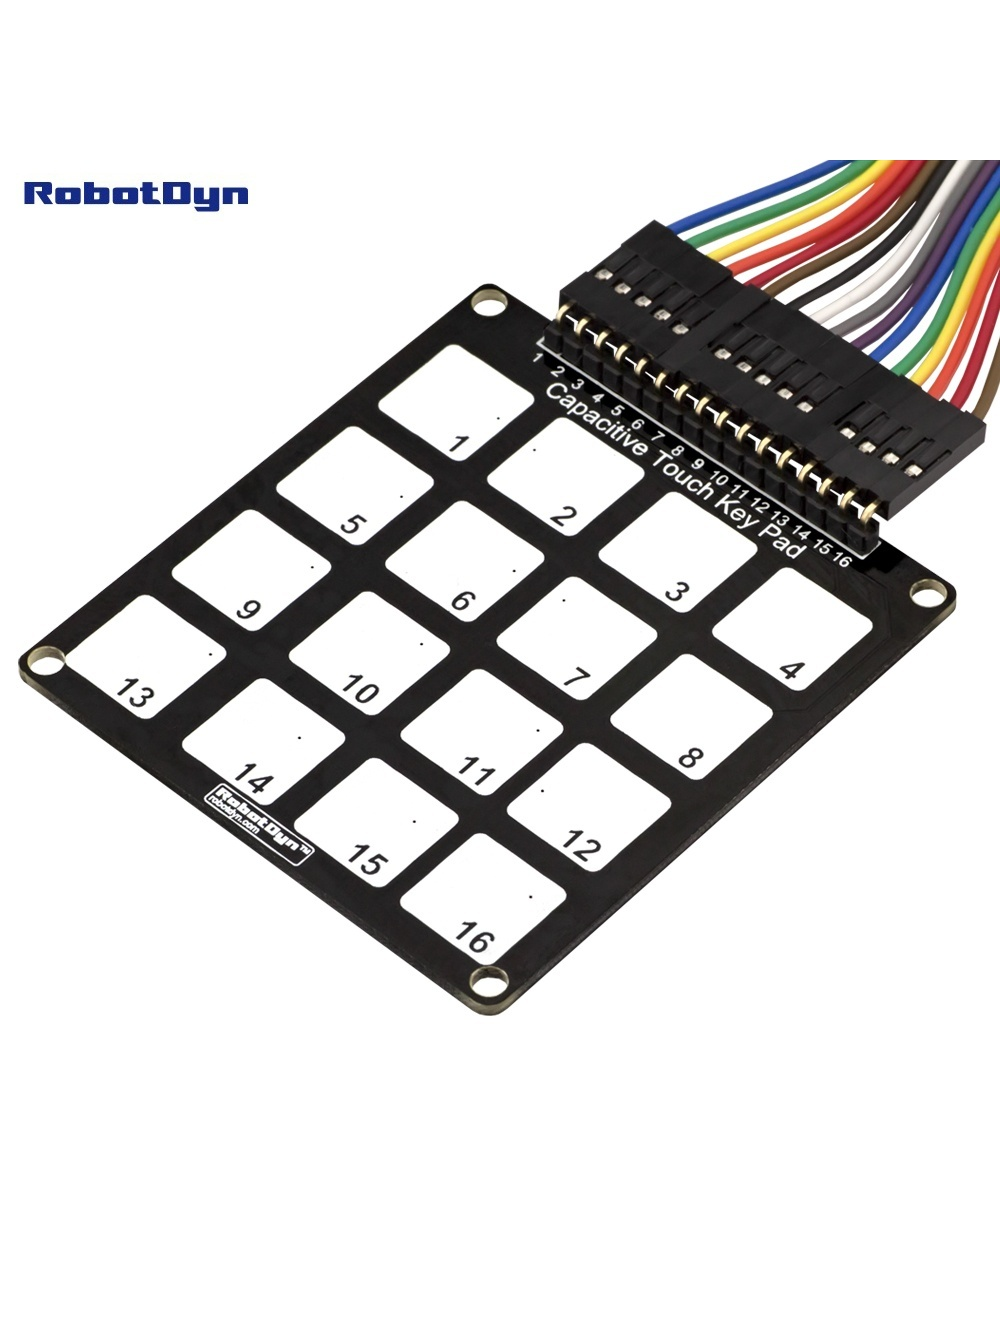 Capacitive Touch Key Pad 16 Keys Robotdyn